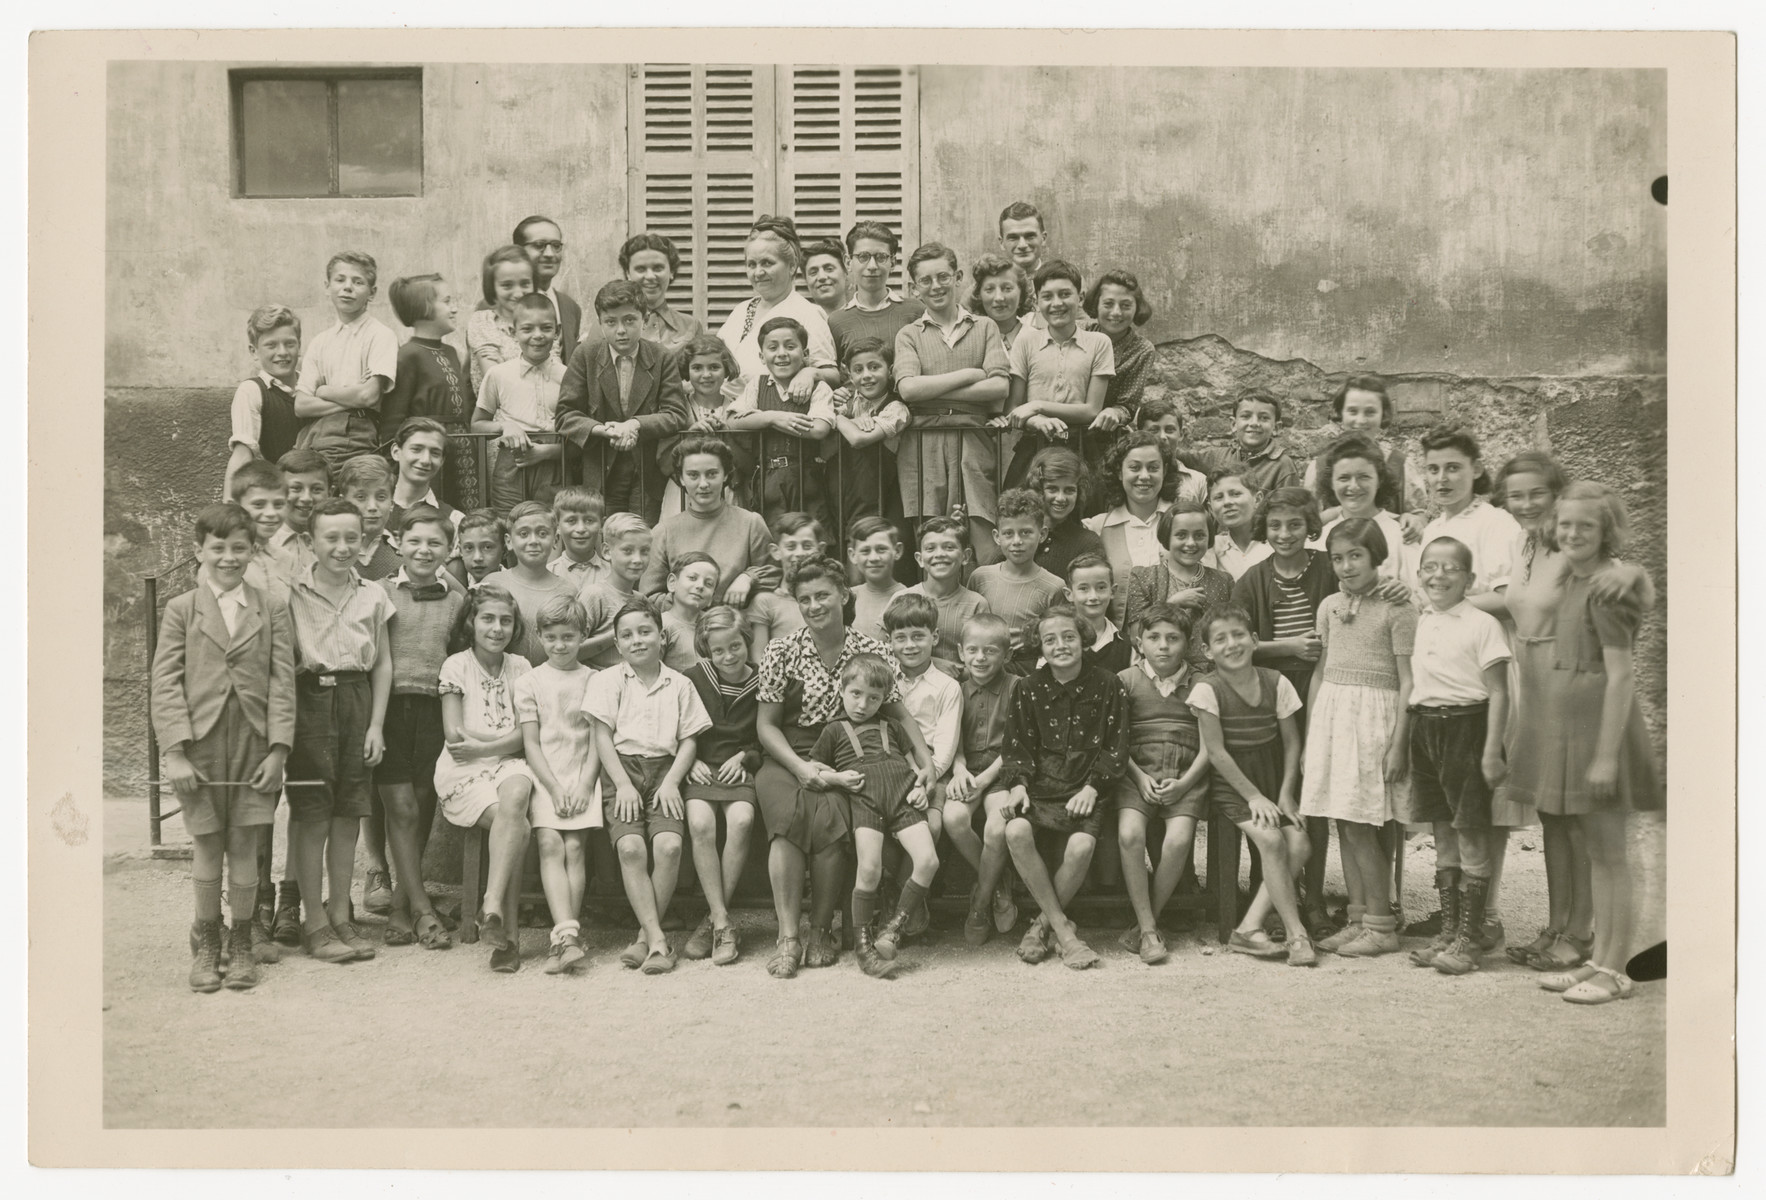 Group portrait of children standing outside of Chateau-le-Masgelier.  Among those pictured are Alice Grunewald, sitting in the front row, thrid from the right, in the dark dress.  Inge Grunewald, standing in the second row, fifth from the left, wearing a stripped top.  Lily Grunewald, standing on the balcony, on the far right, slightly behind a boy.